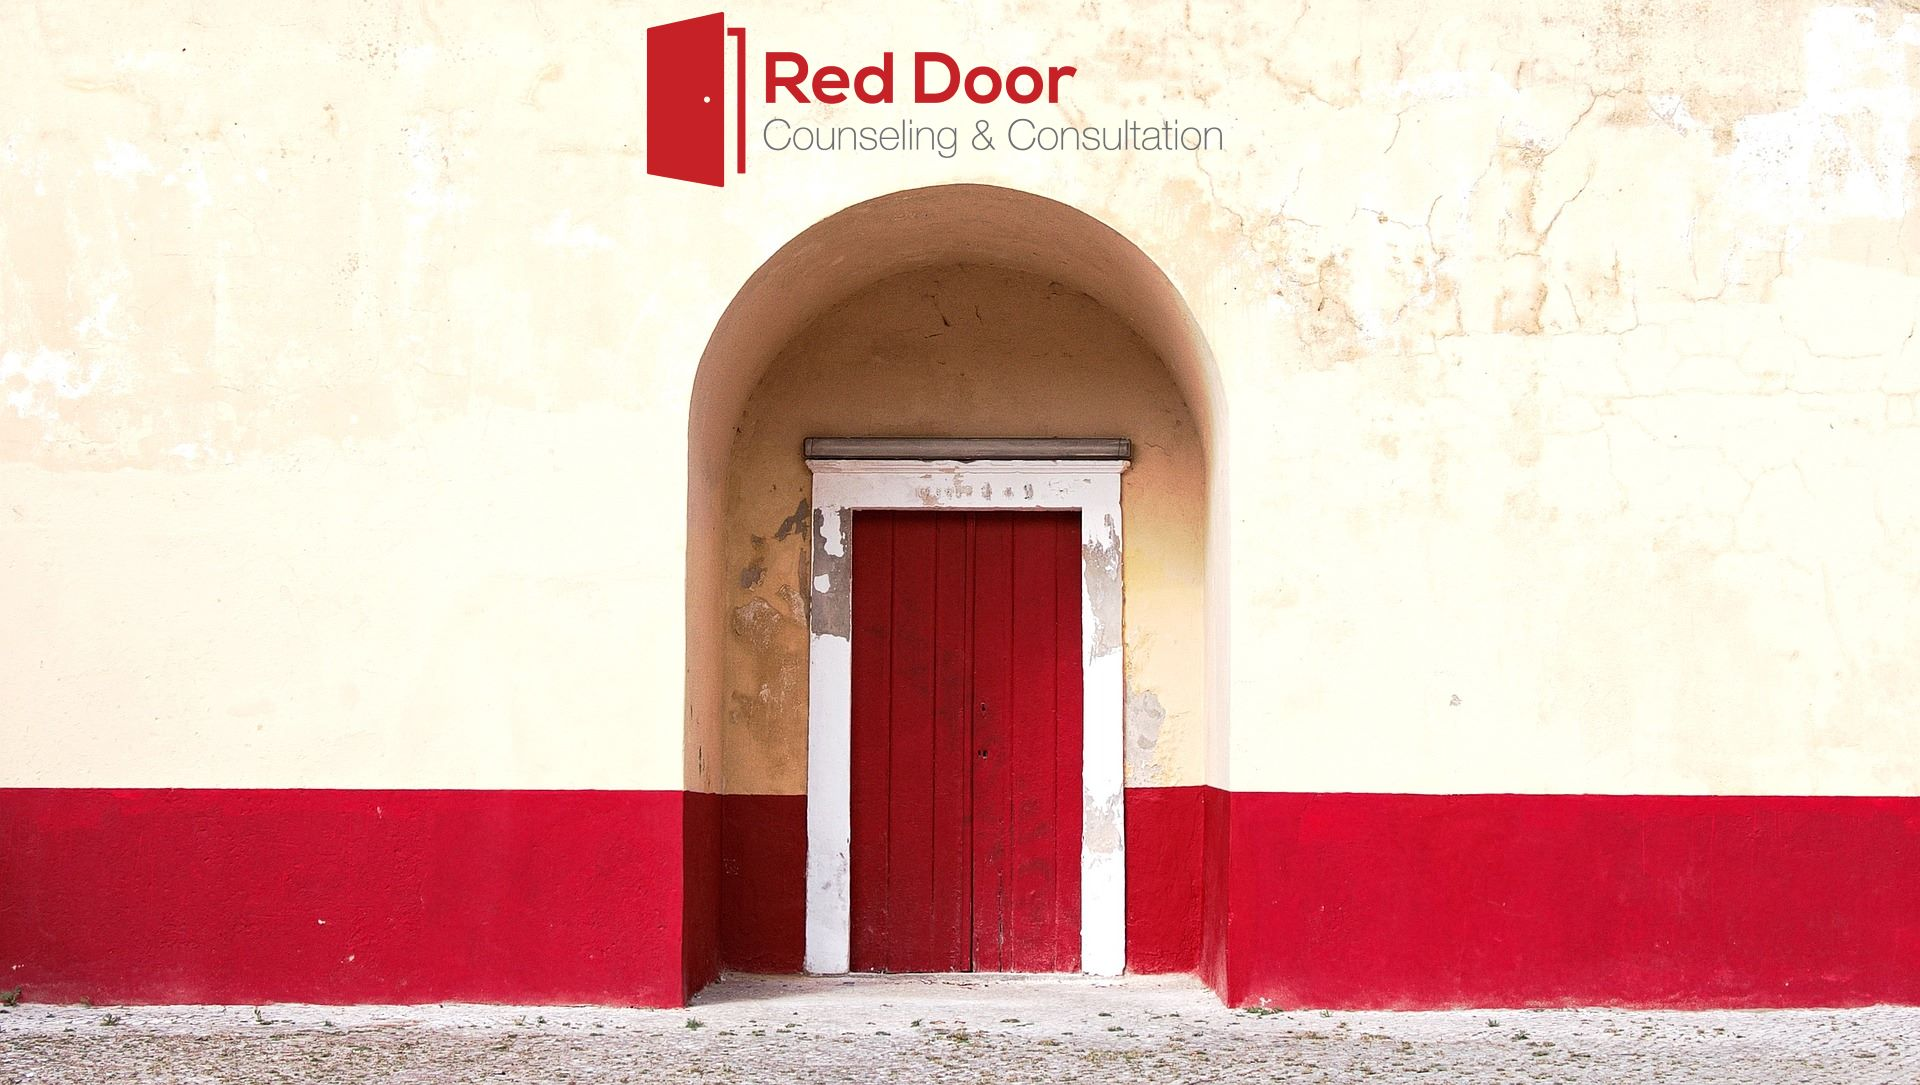 Contact Red Door Counseling Consultation